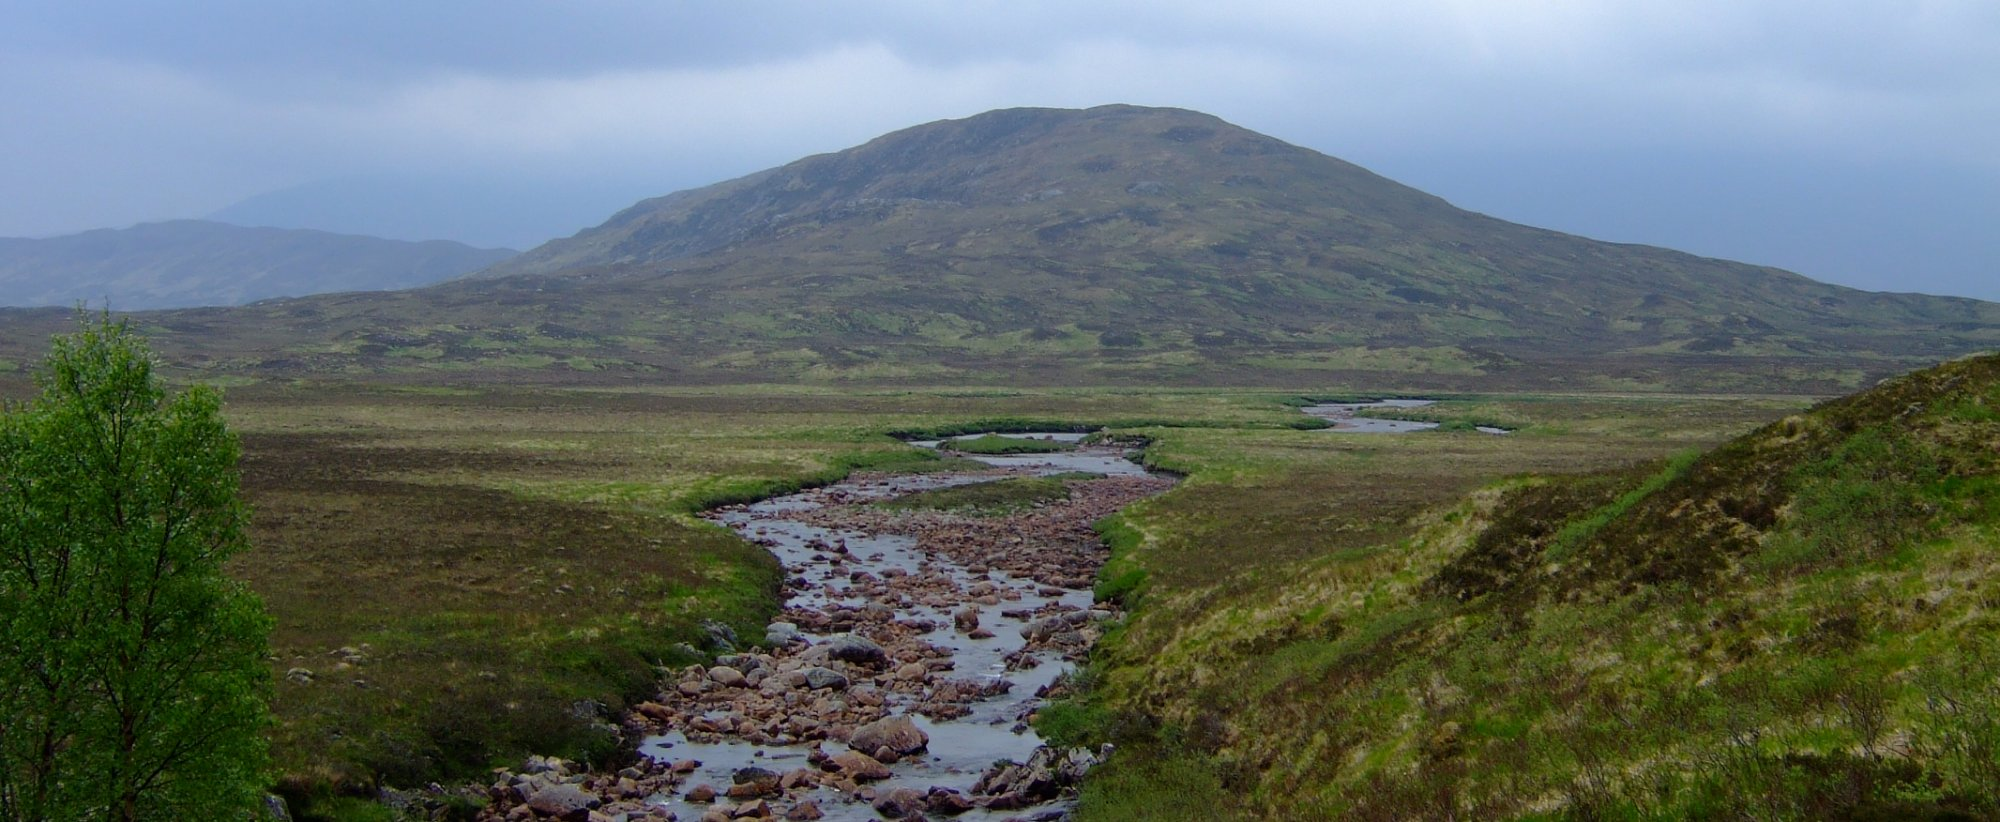 The view from Ba Bridge looking east towards Meall Beag